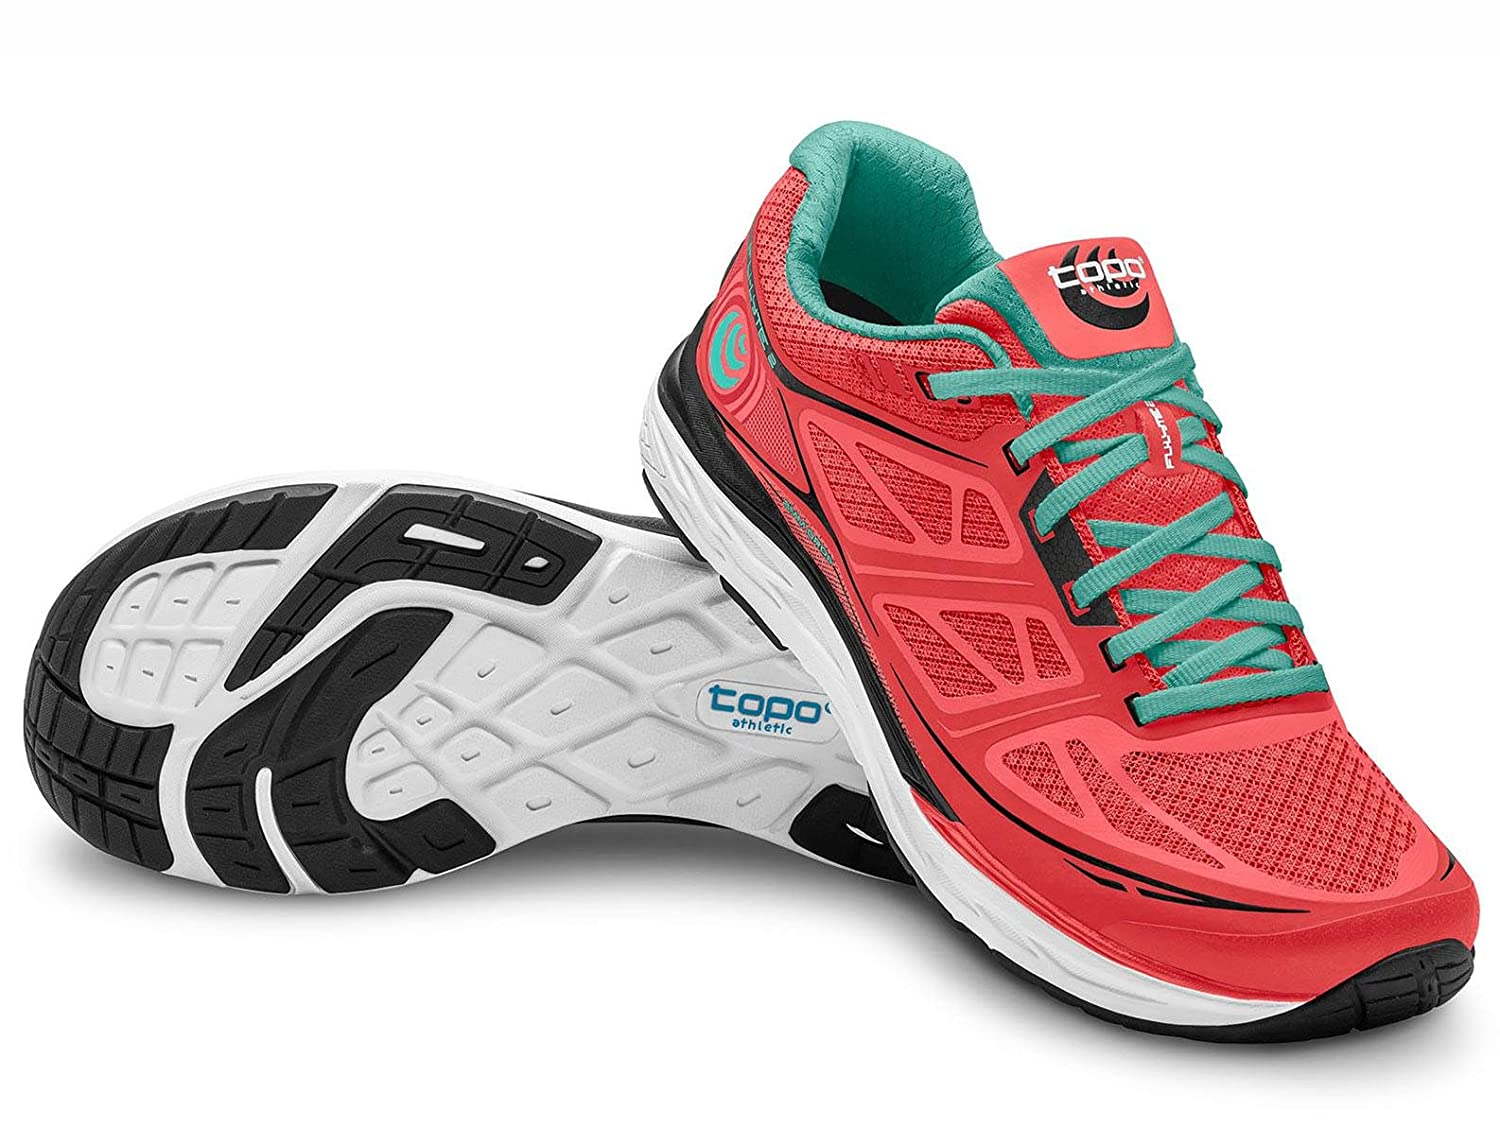 Topo Athletic Fli-Lyte 2 Running Shoes - Women's B071CDYM71 8.5 B(M) US|Coral/Aqua